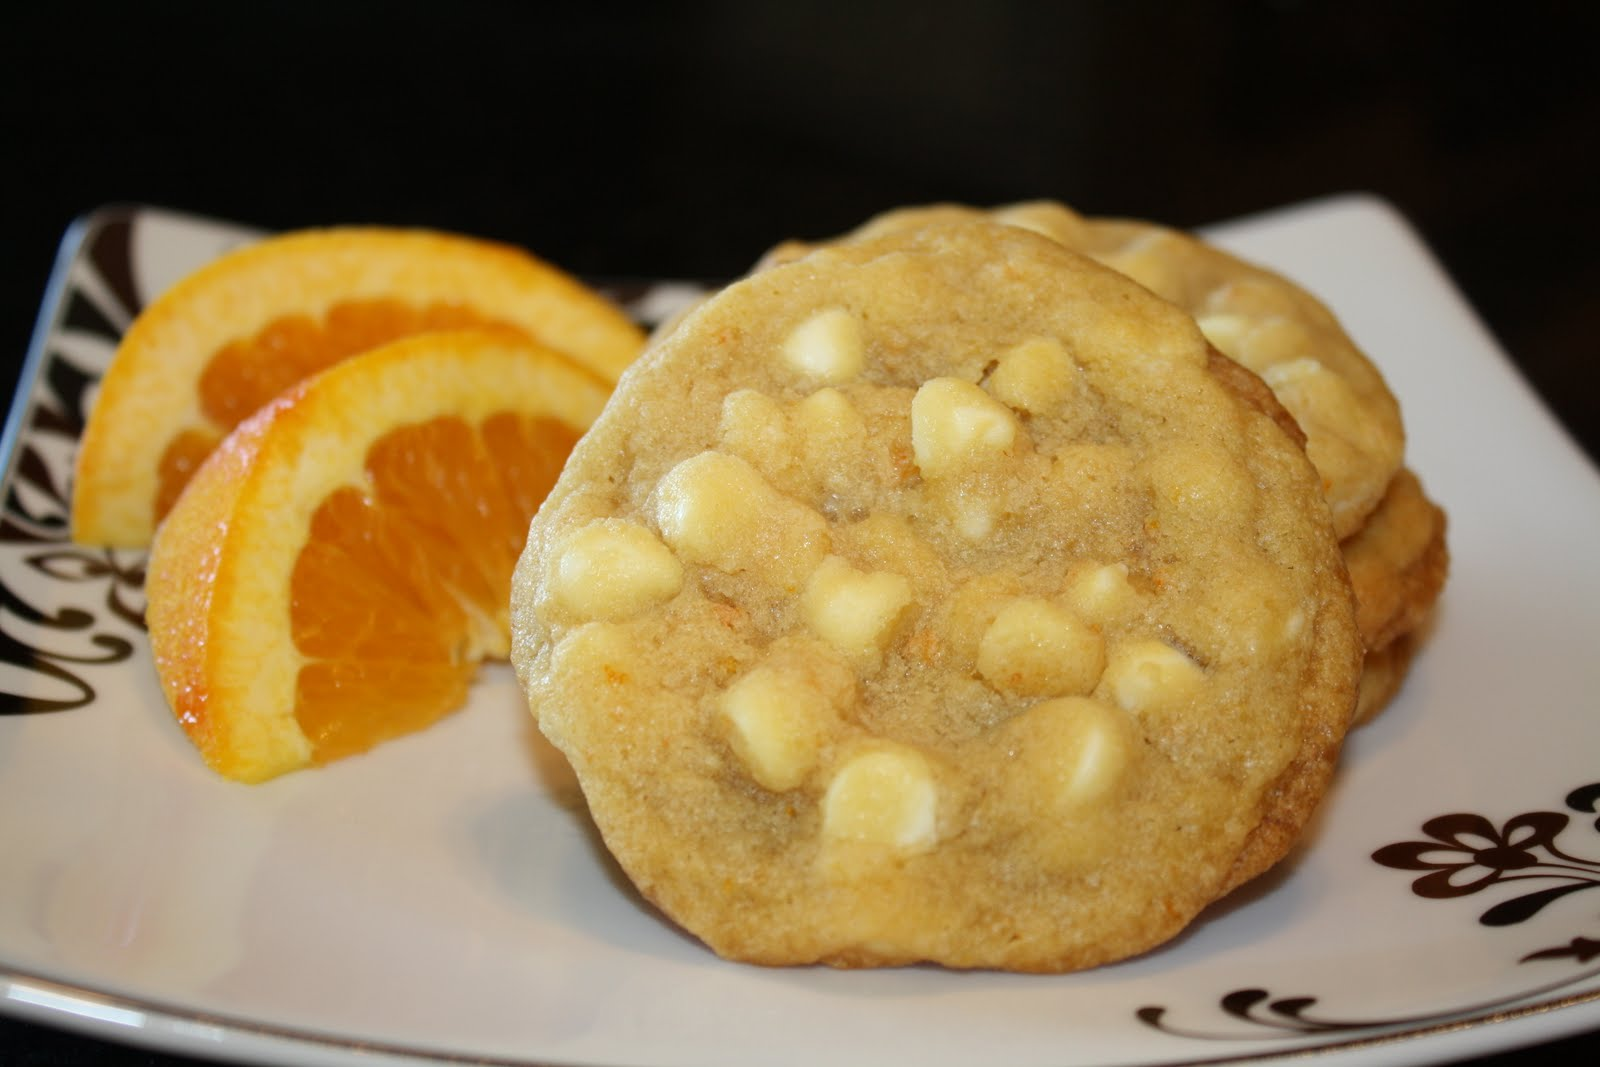 Seasoned with Love: White Chocolate Orange Cookies